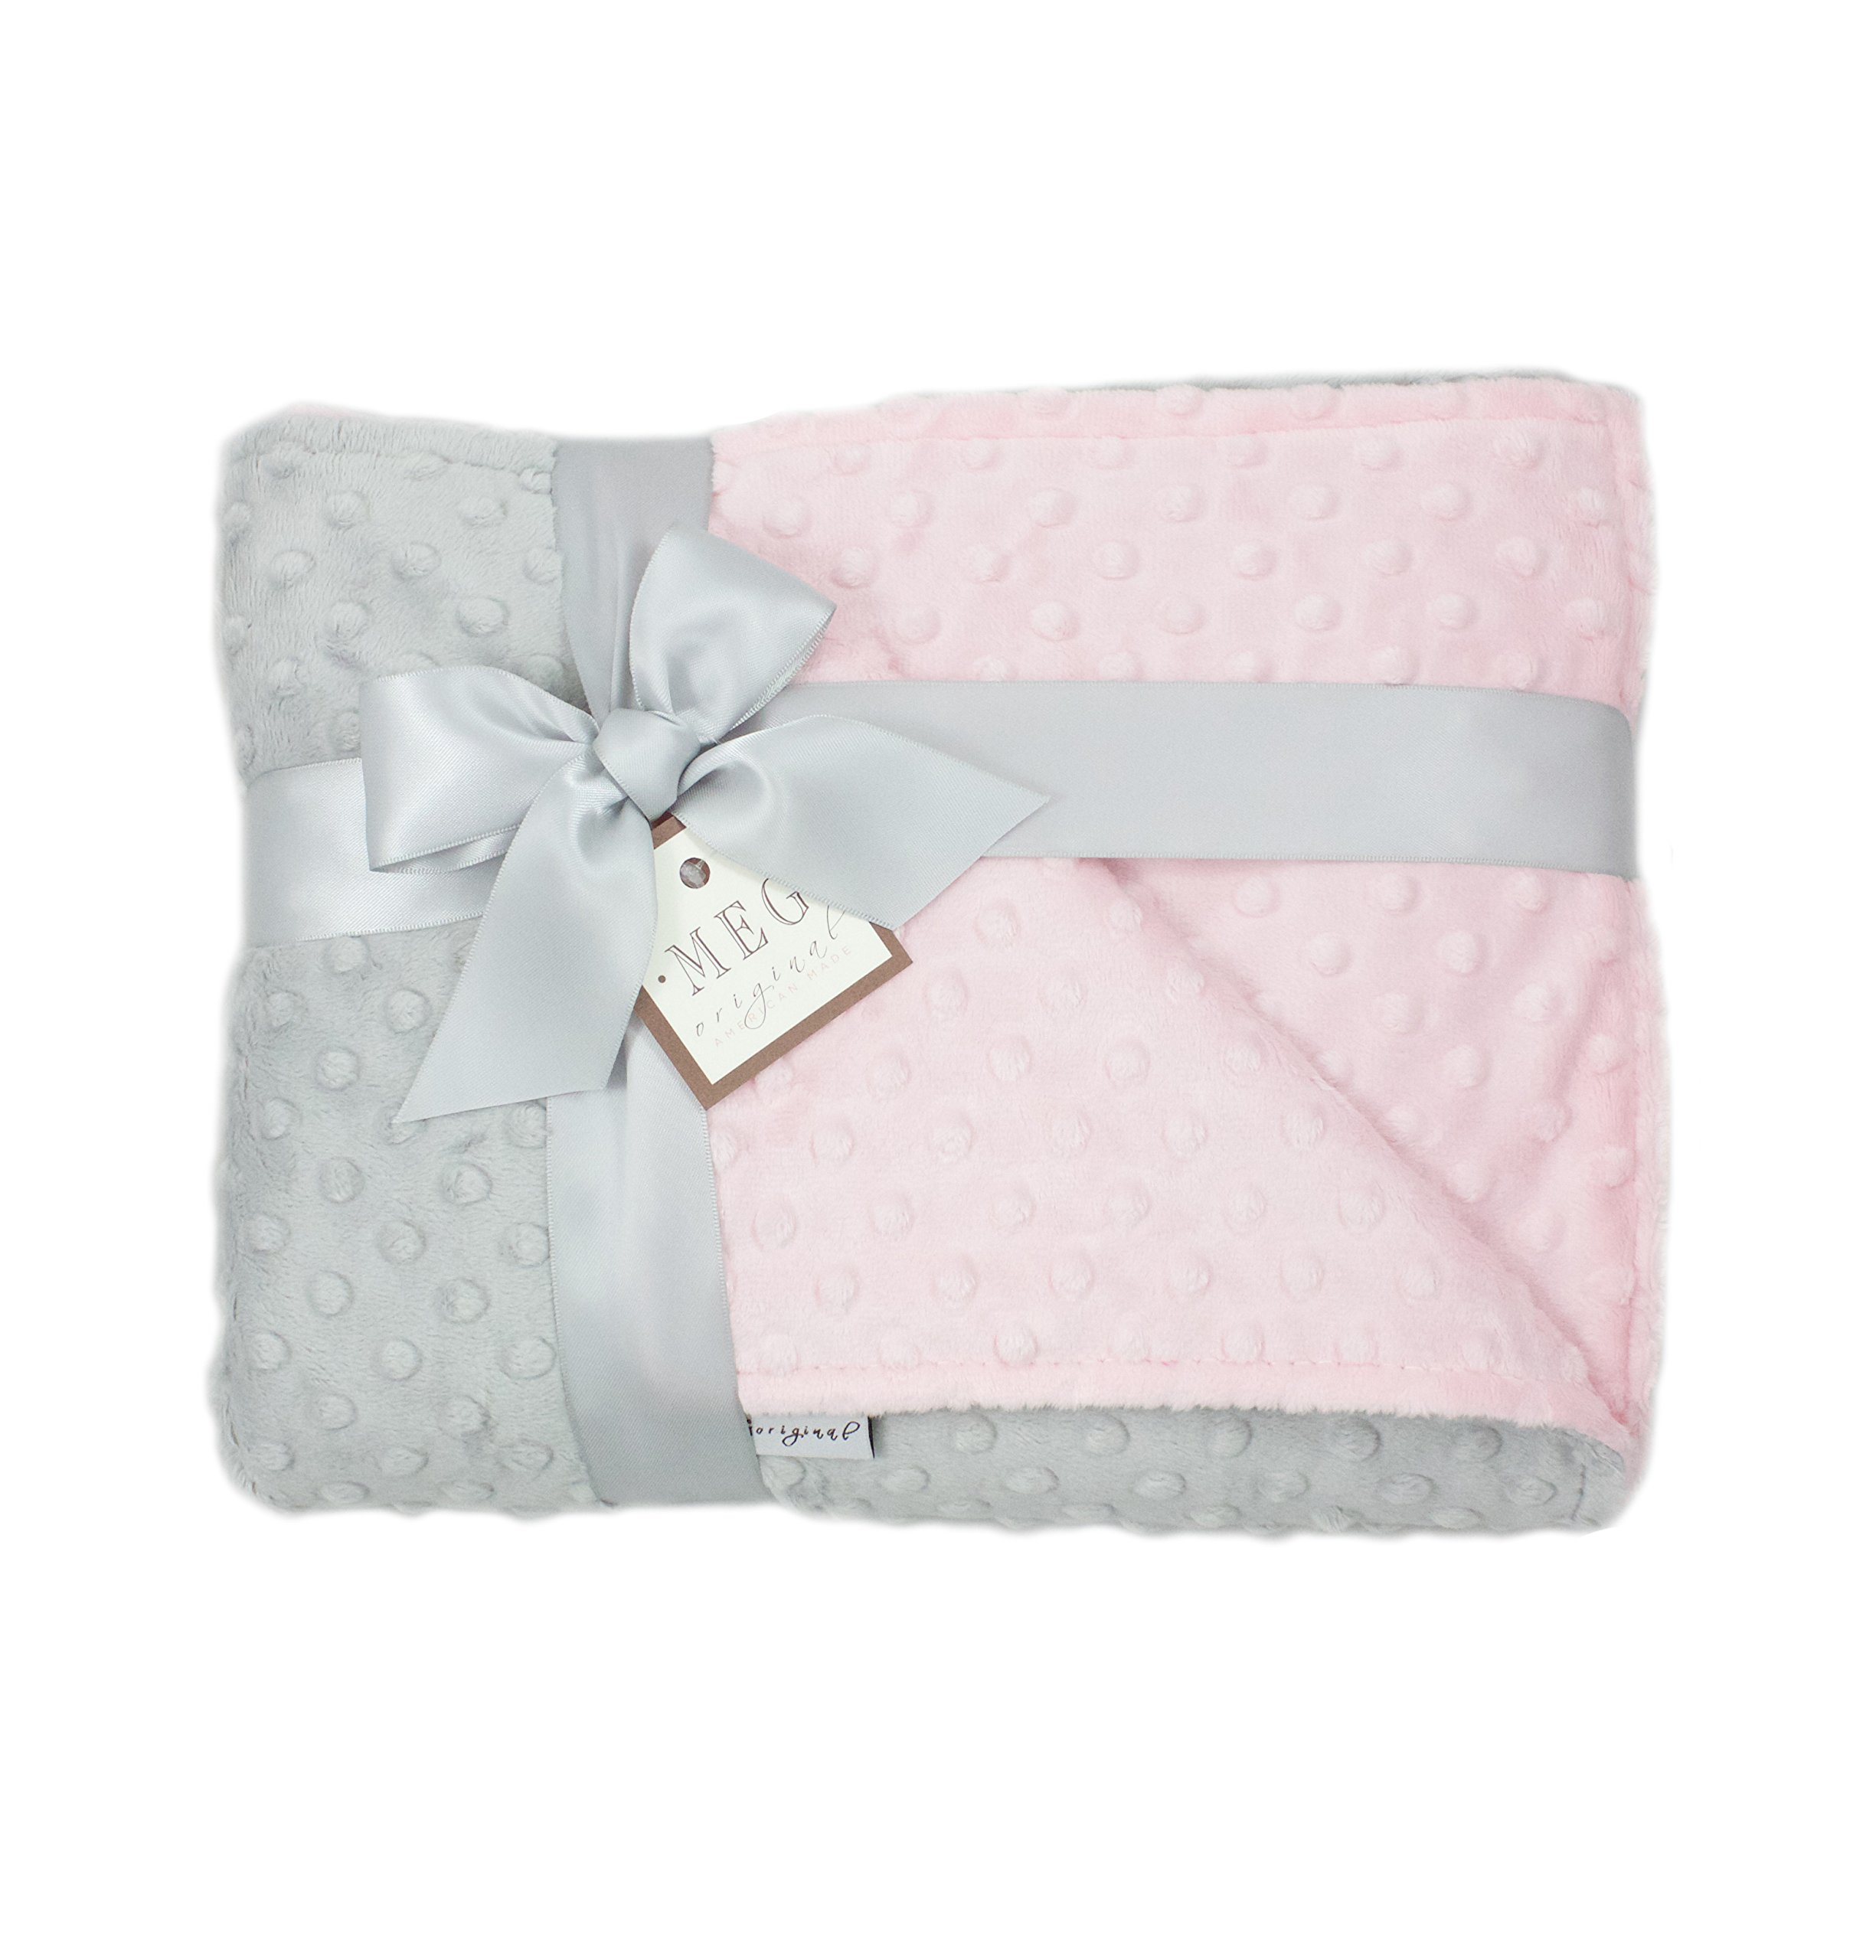 MEG Original Pink & Gray Minky Dot Baby Girl/Toddler Crib Blanket 6777